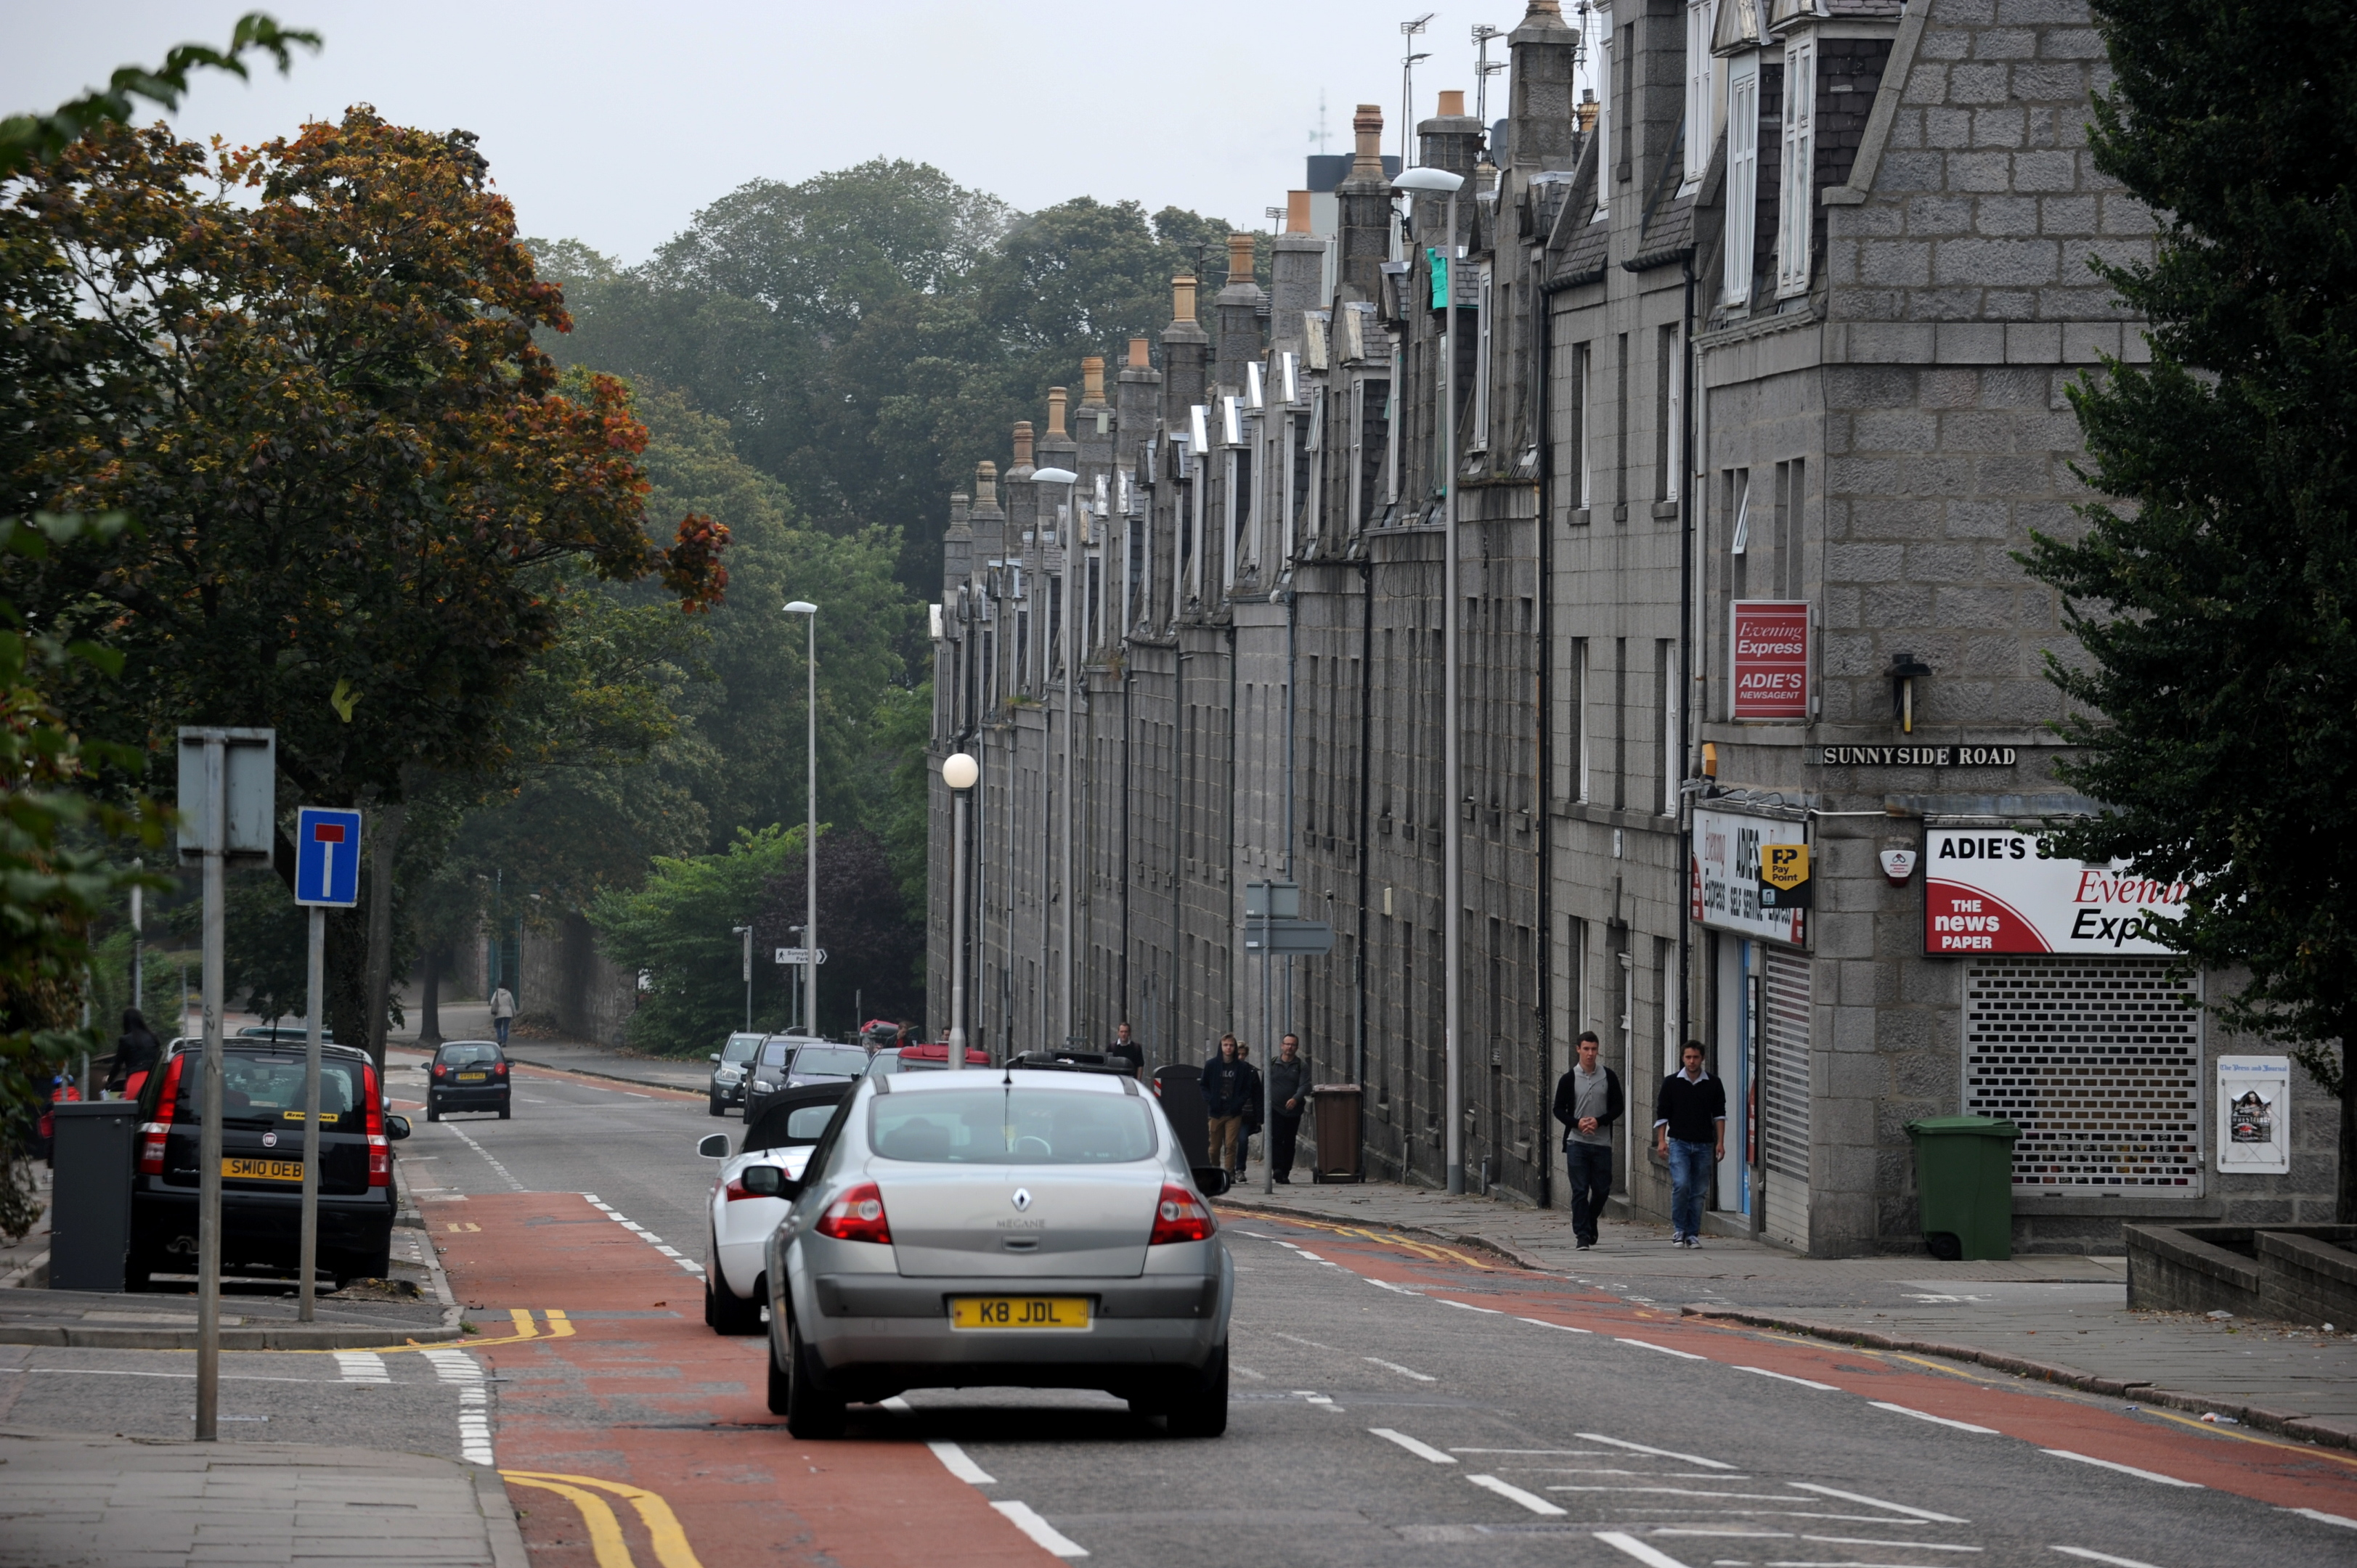 The bus gate will be introduced on Bedford Road in Aberdeen.